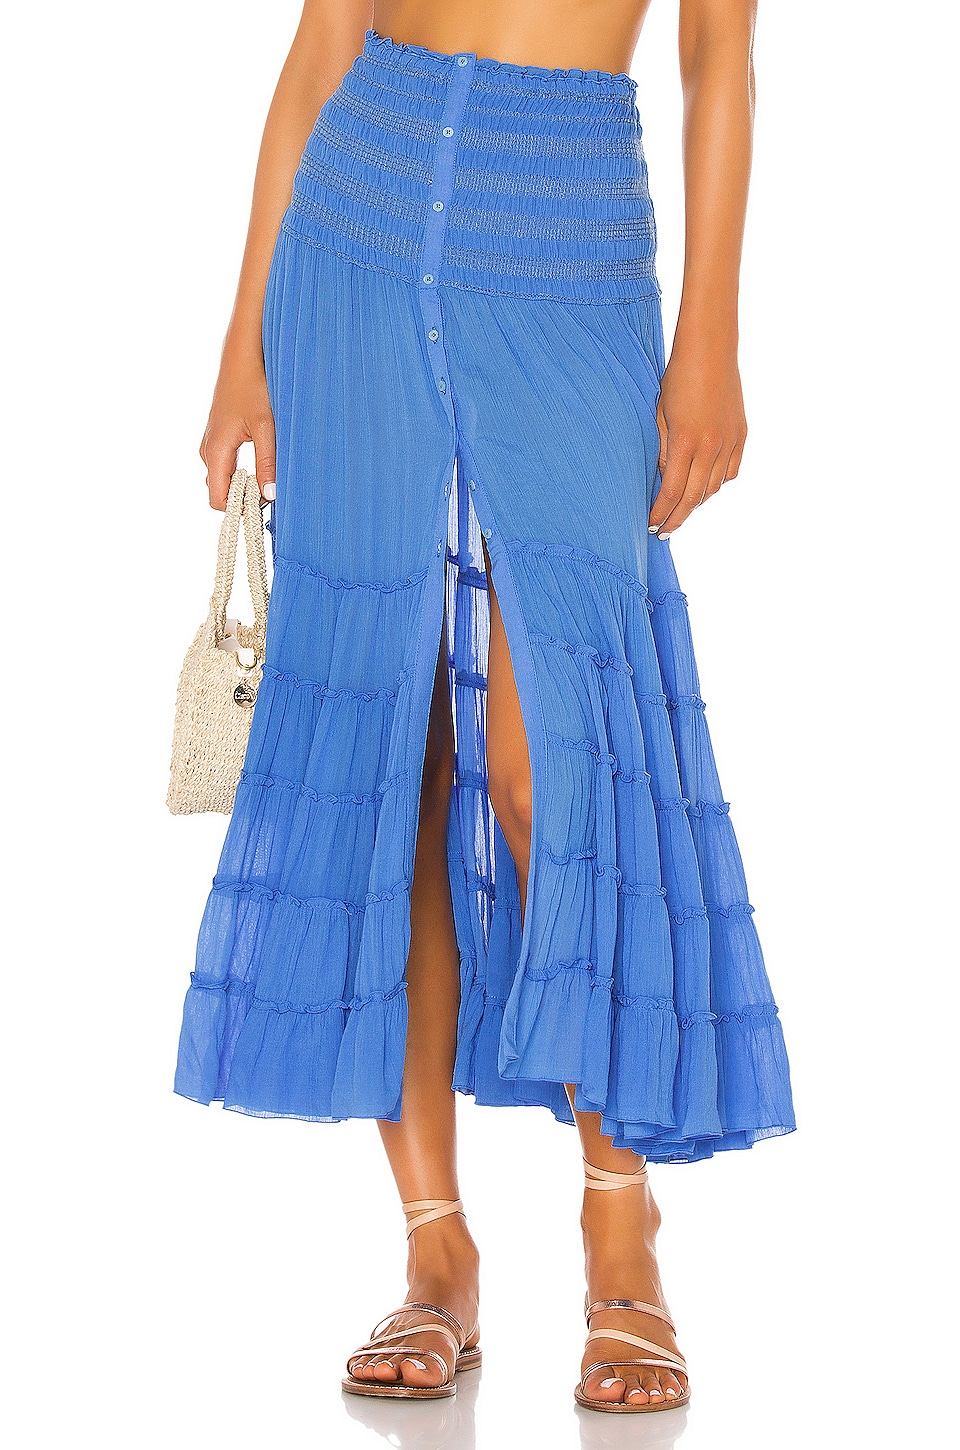 Poupette St Barth Foe Panelled Maxi Skirt in Blue